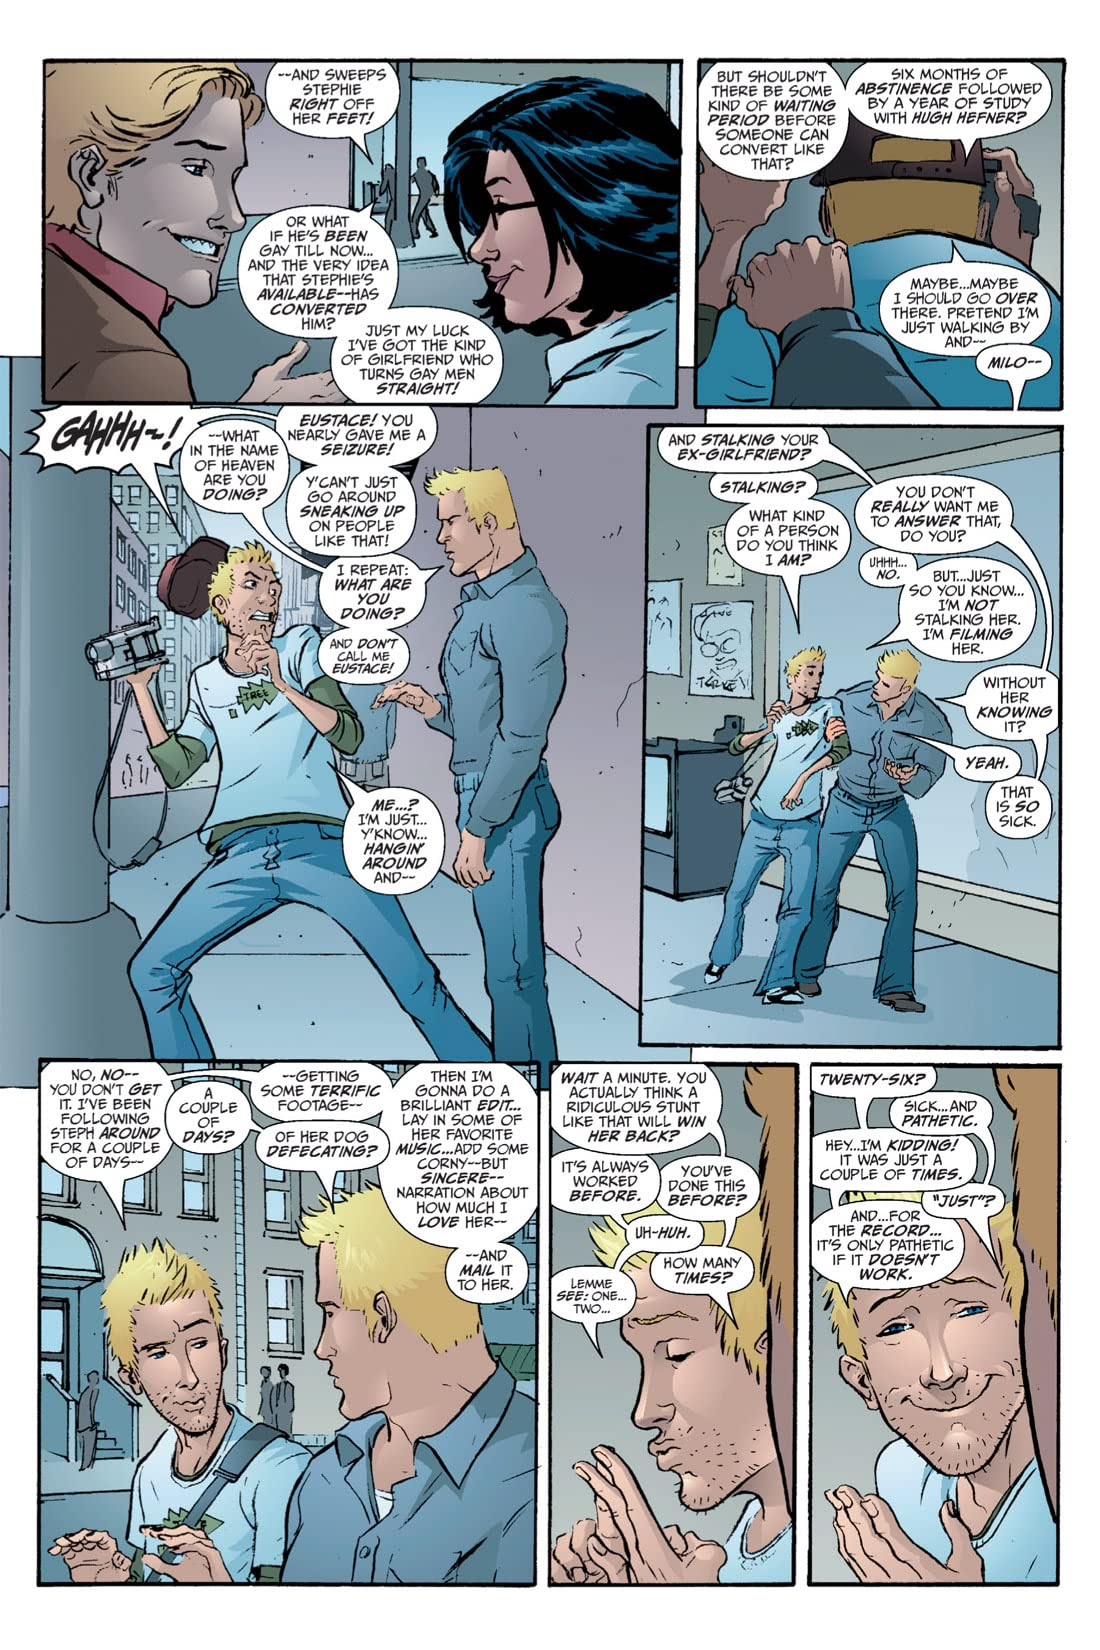 Hero Squared Vol. 2: Another Fine Mess #4 (of 6)